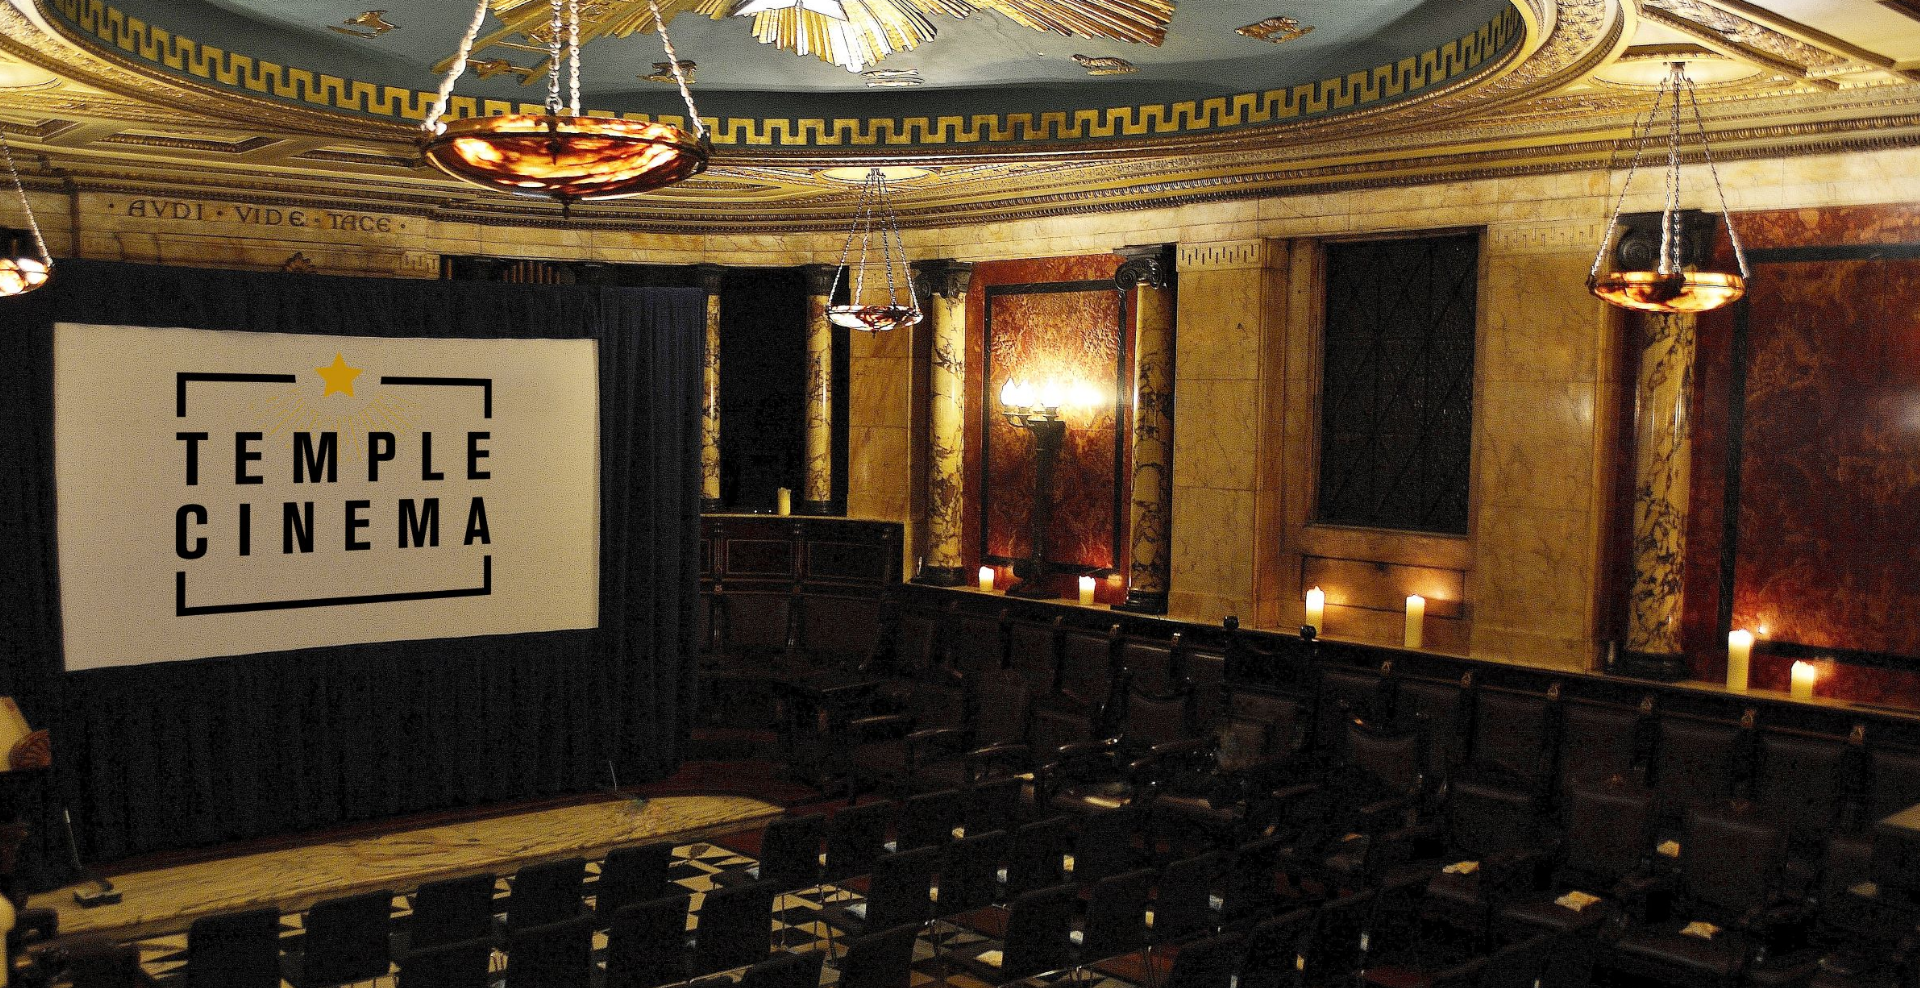 Andaz London Presents: TEMPLE CINEMA